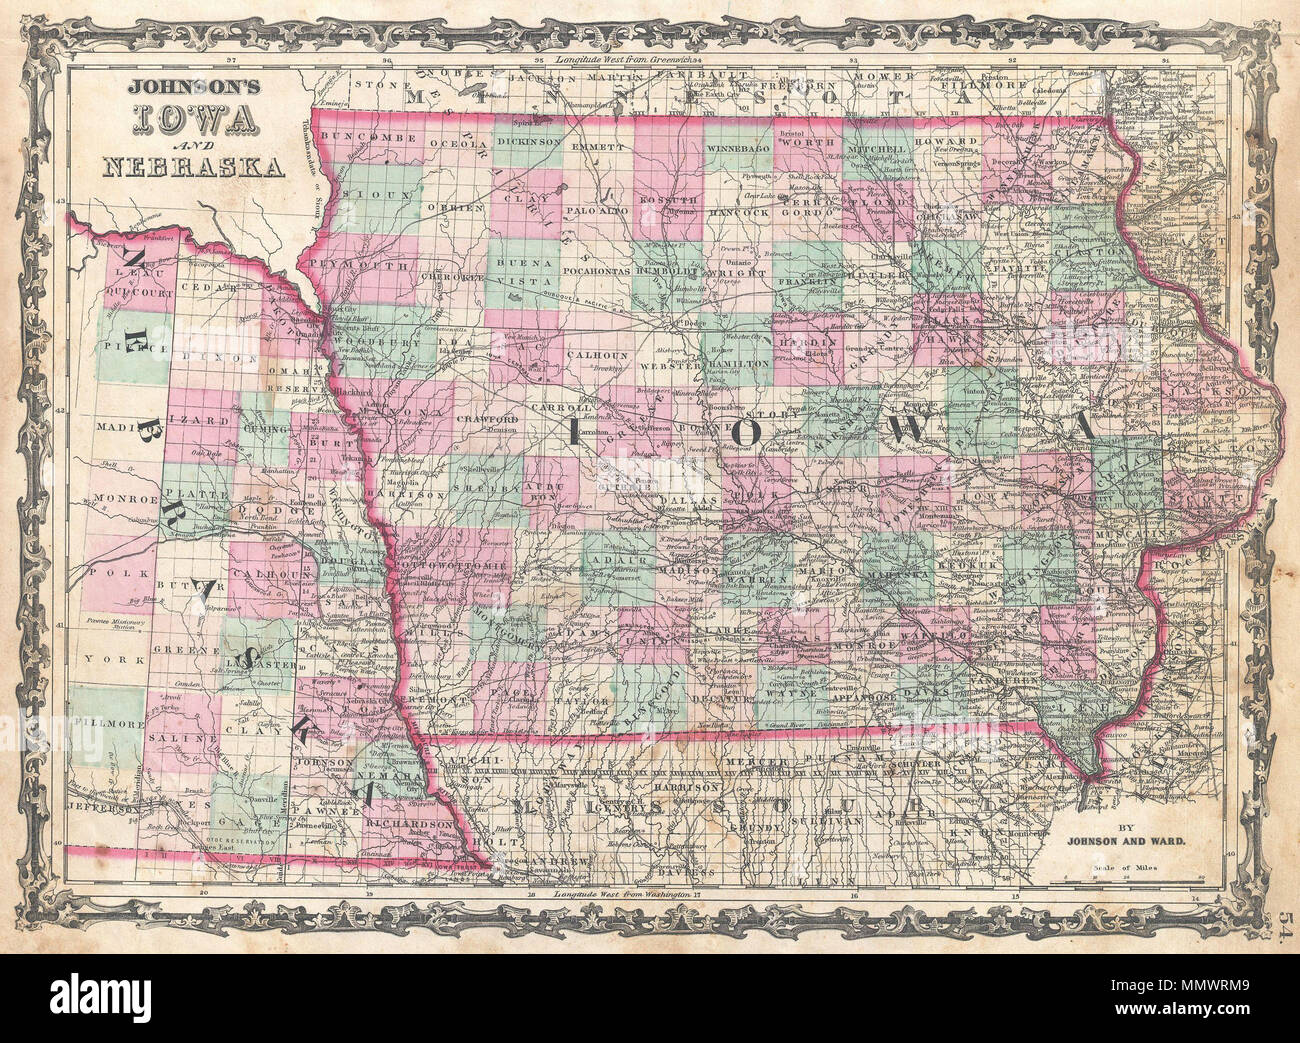 english: this is a. j. johnson's 1862 iowamap of iowa and